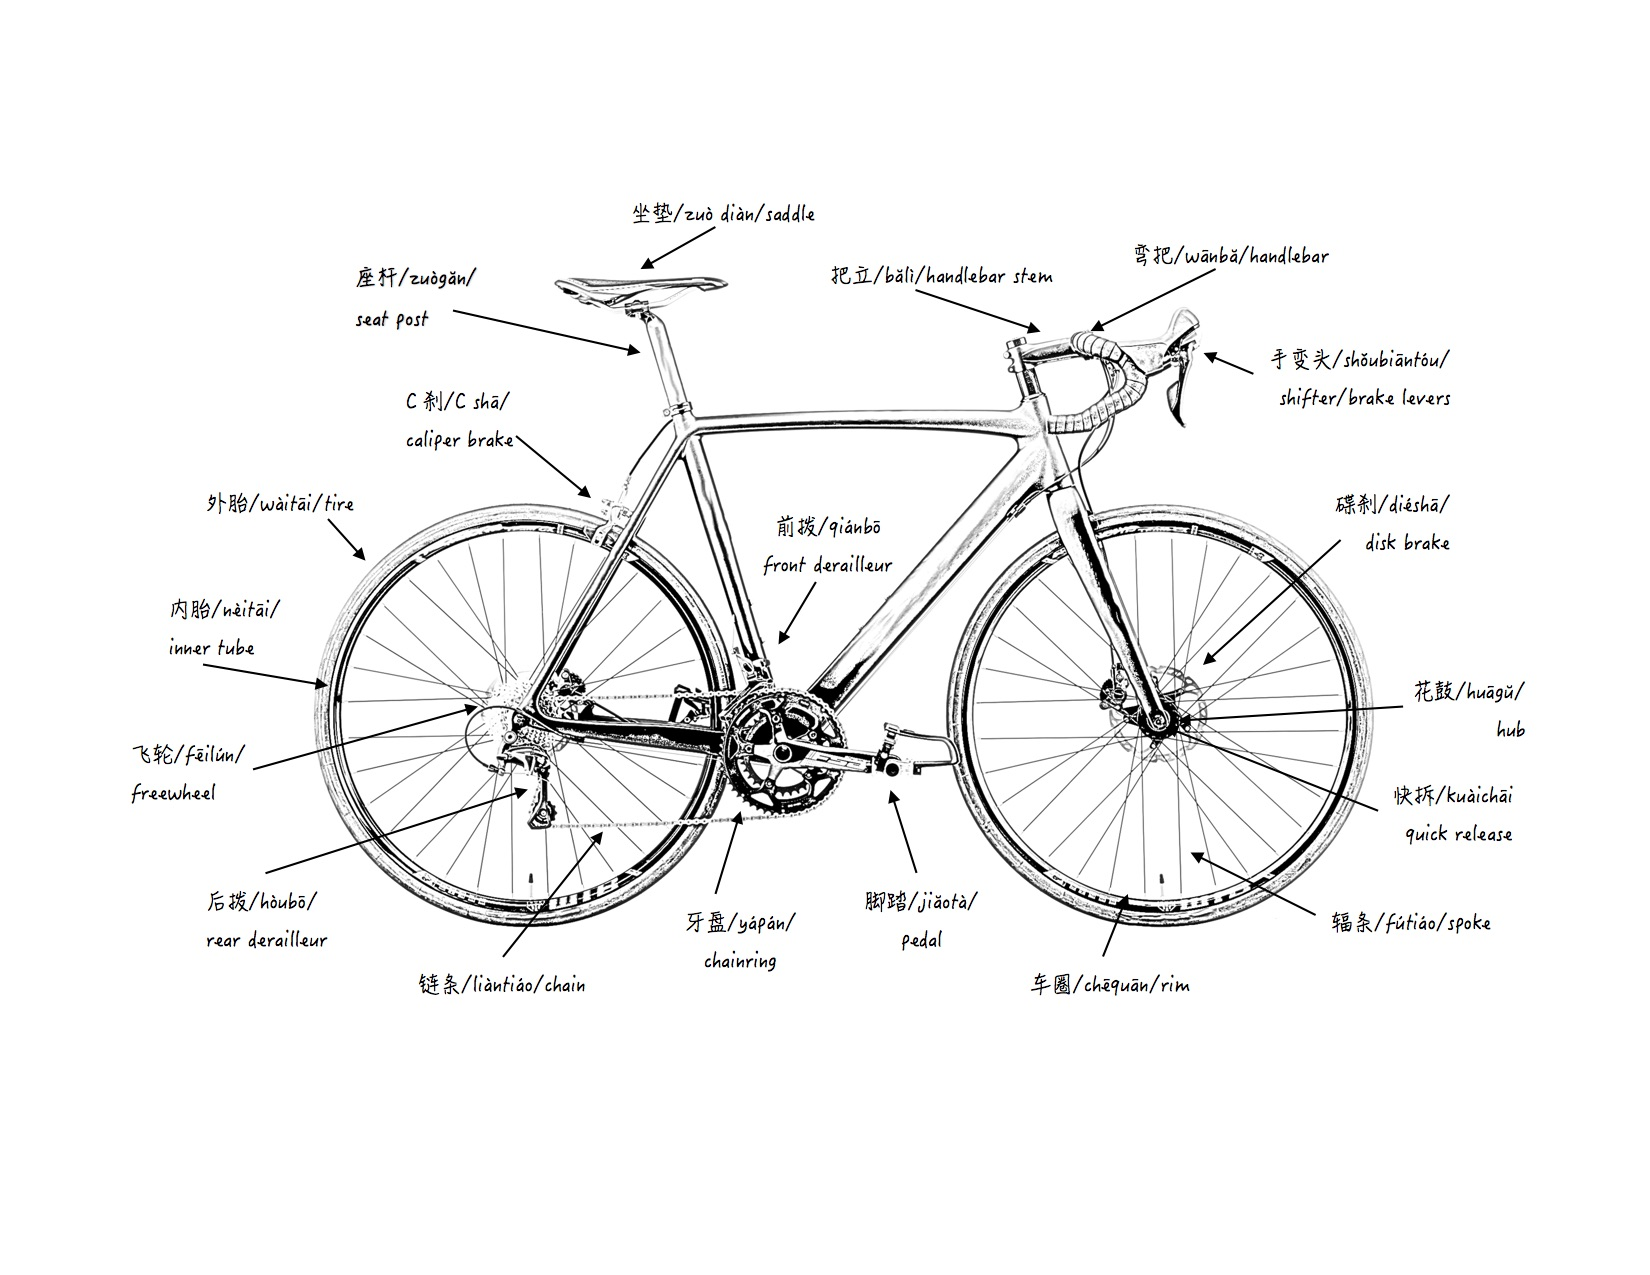 bike parts diagram 18 wiring diagram images wiring Residential Electrical Wiring Diagrams Chevy Wiring Diagrams Automotive